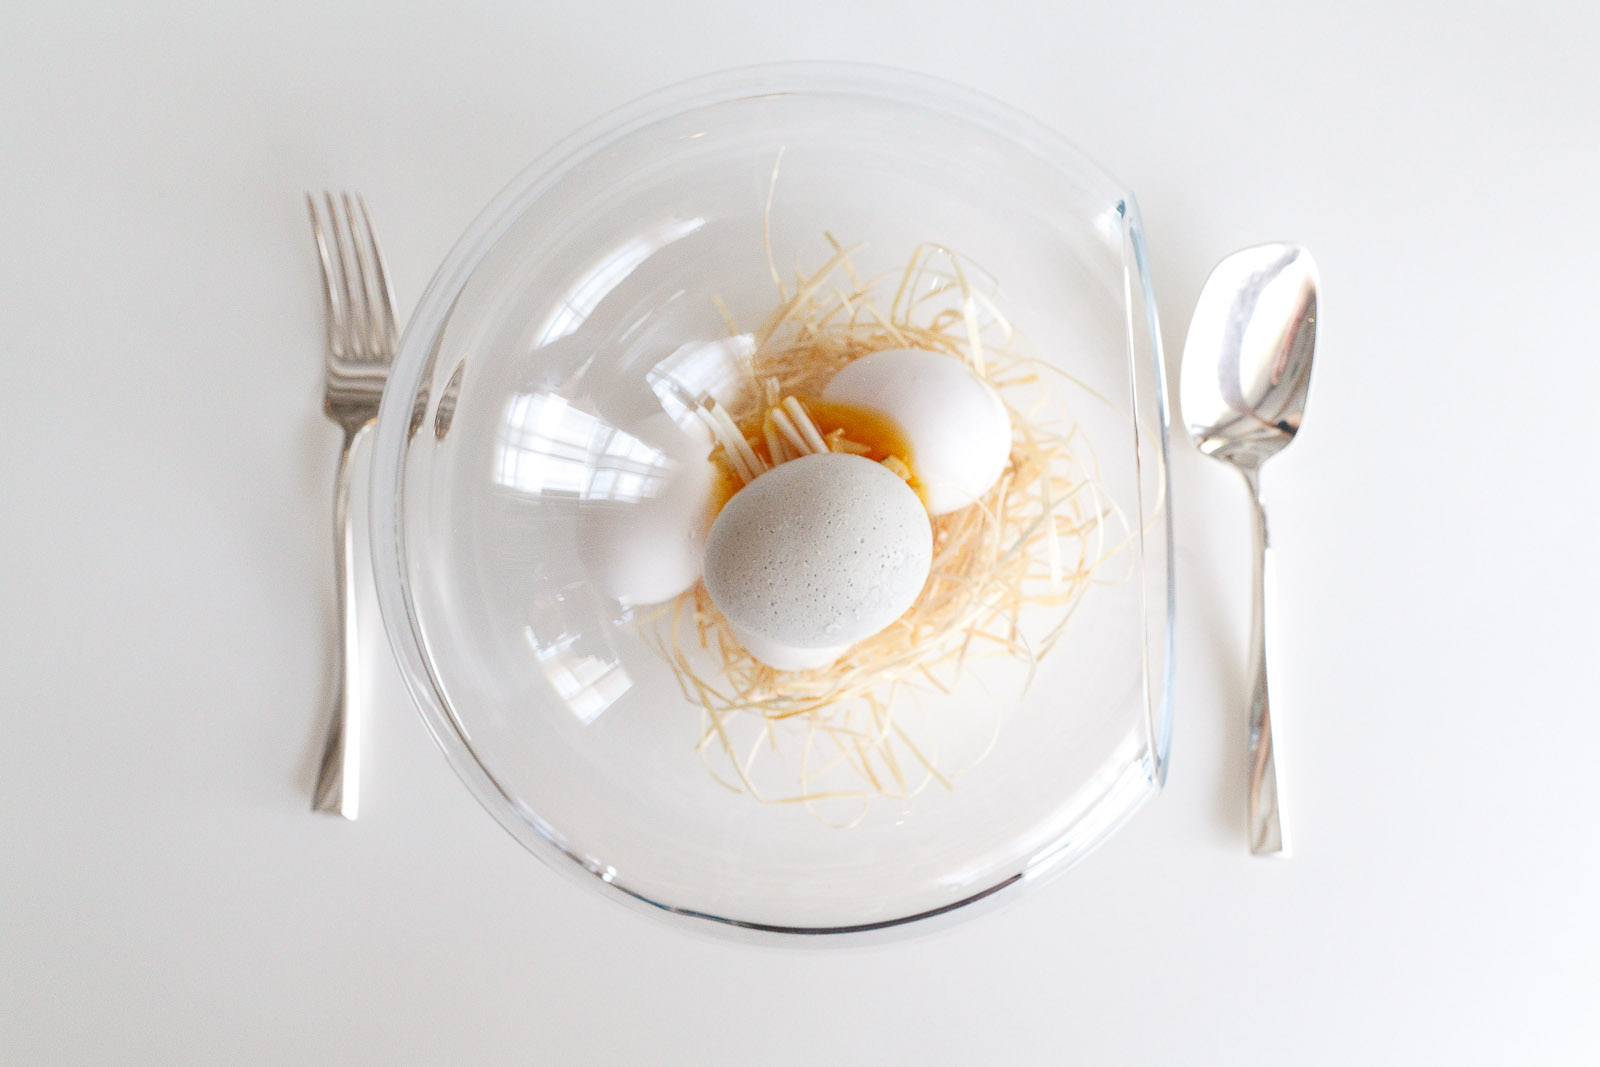 """18th Course: """"Which came first?"""" - """"Egg"""" made from cream of white asparagus filled with egg yolk and chicken stock."""